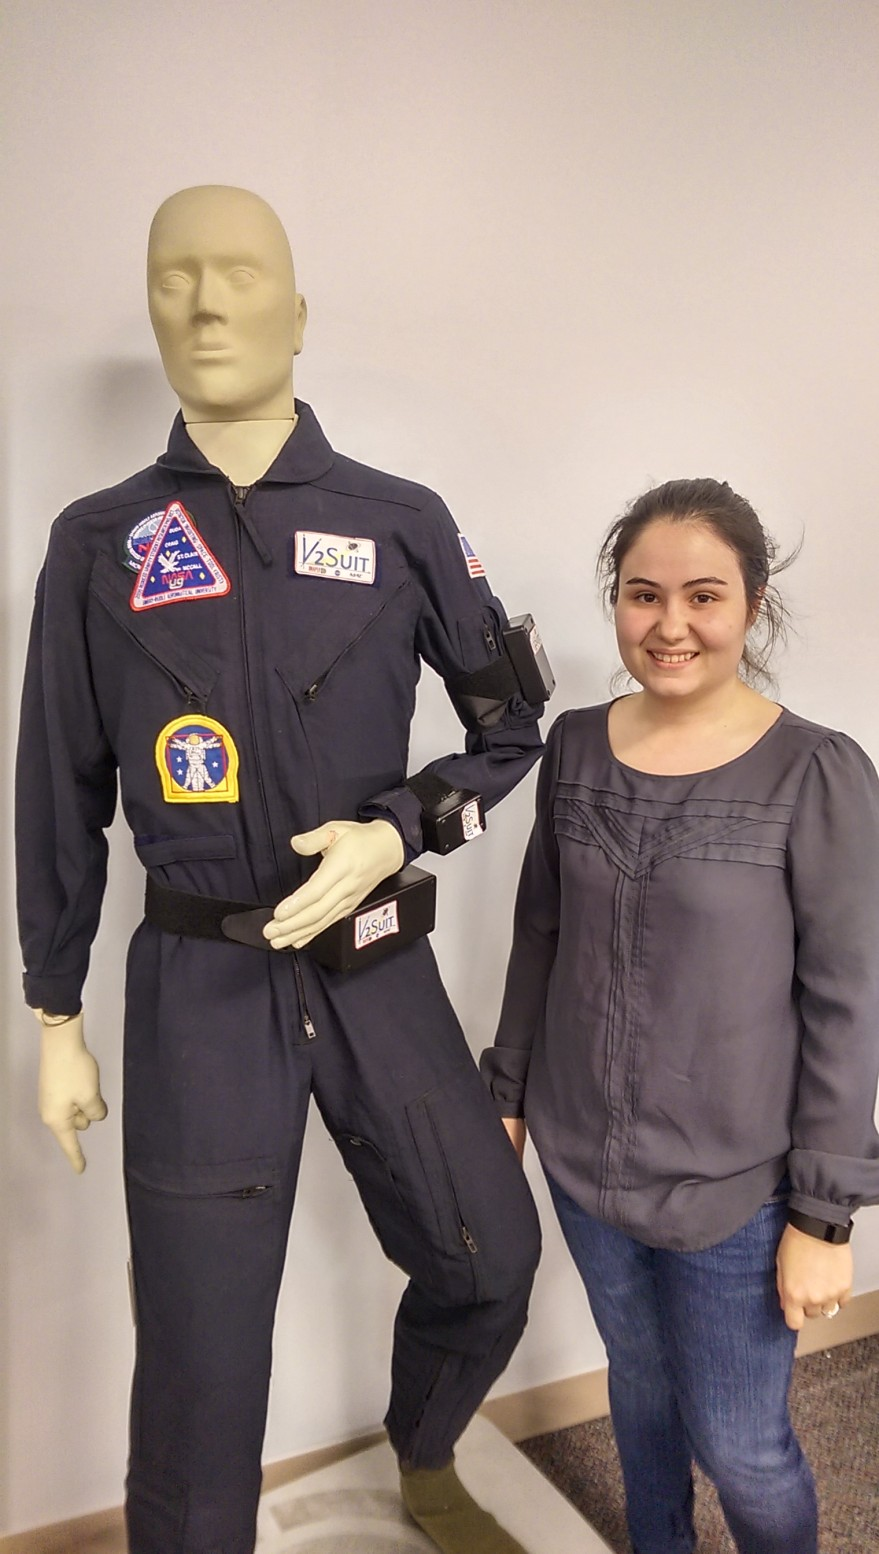 Rebecca Vazquez, an electro-mechanical engineer working on the V2Suit. Credit: SpaceNews/Jonathan Charlton